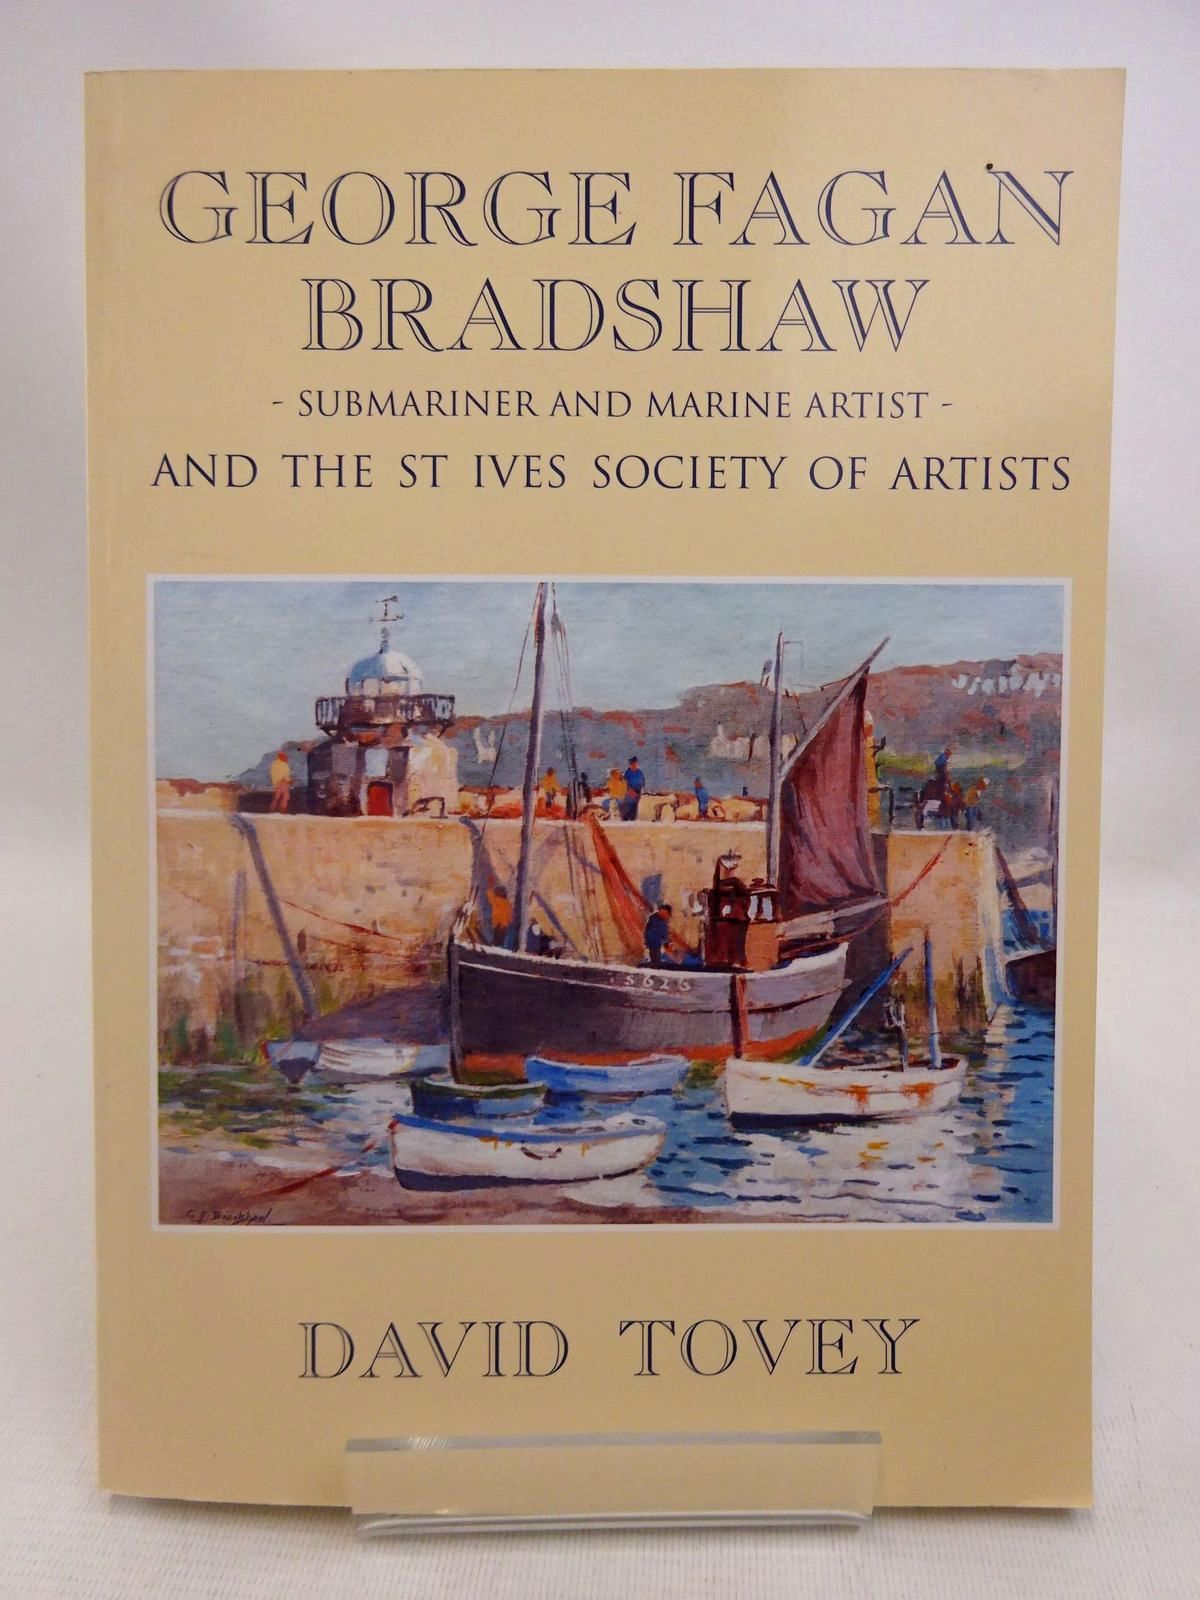 Photo of GEORGE FAGAN BRADSHAW - SUBMARINER AND MARINE ARTIST - AND THE ST IVES SOCIETY OF ARTISTS written by Tovey, David illustrated by Bradshaw, George Fagan published by Wilson Books (STOCK CODE: 1816503)  for sale by Stella & Rose's Books